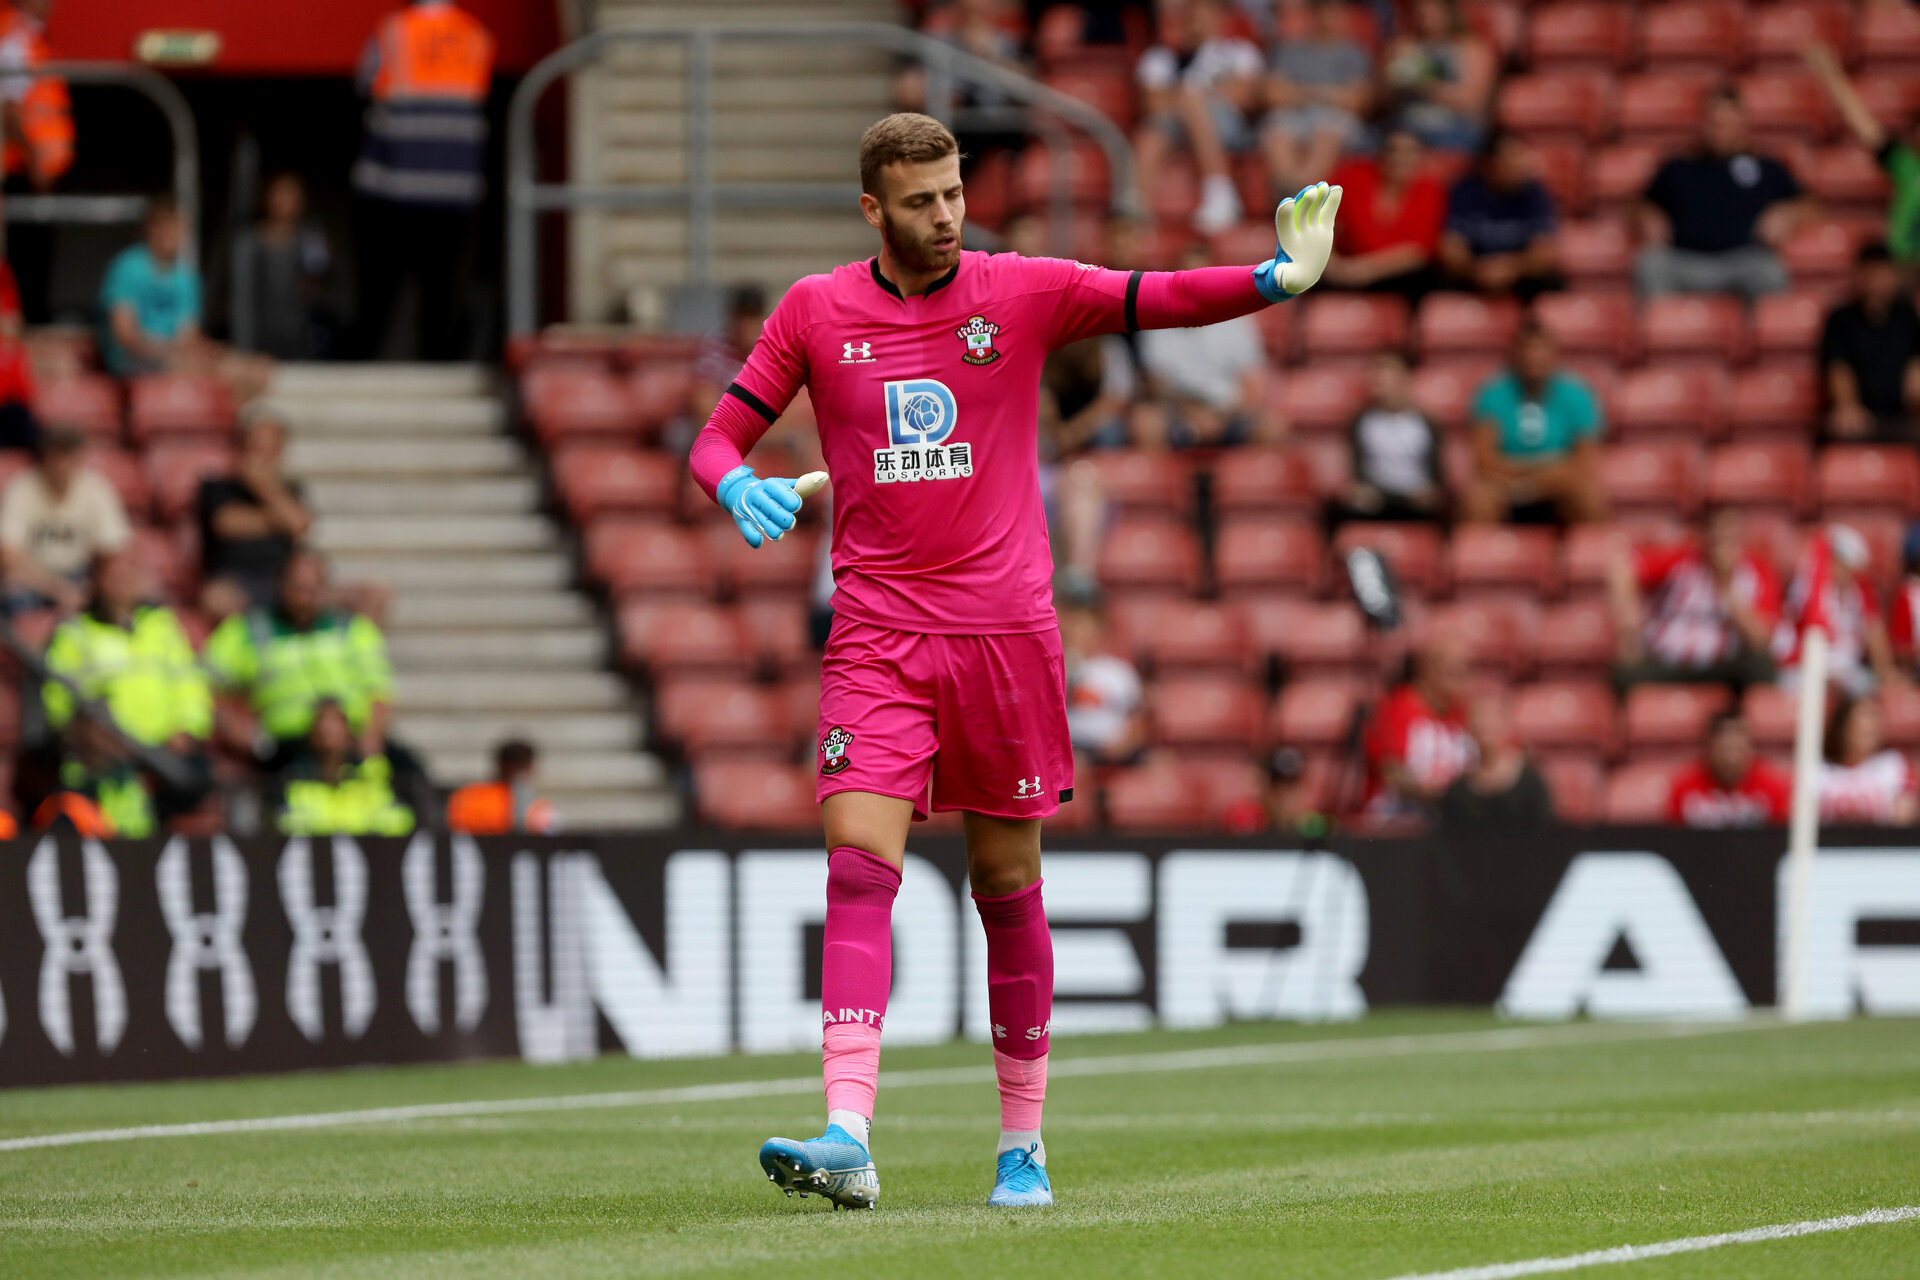 SOUTHAMPTON, ENGLAND - AUGUST 03: Angus Gunn during the Pre-Season Friendly match between Southampton FC and FC Köln at St. Mary's Stadium on August 3, 2019 in Southampton, England. (Photo by Chris Moorhouse/Southampton FC via Getty Images,)